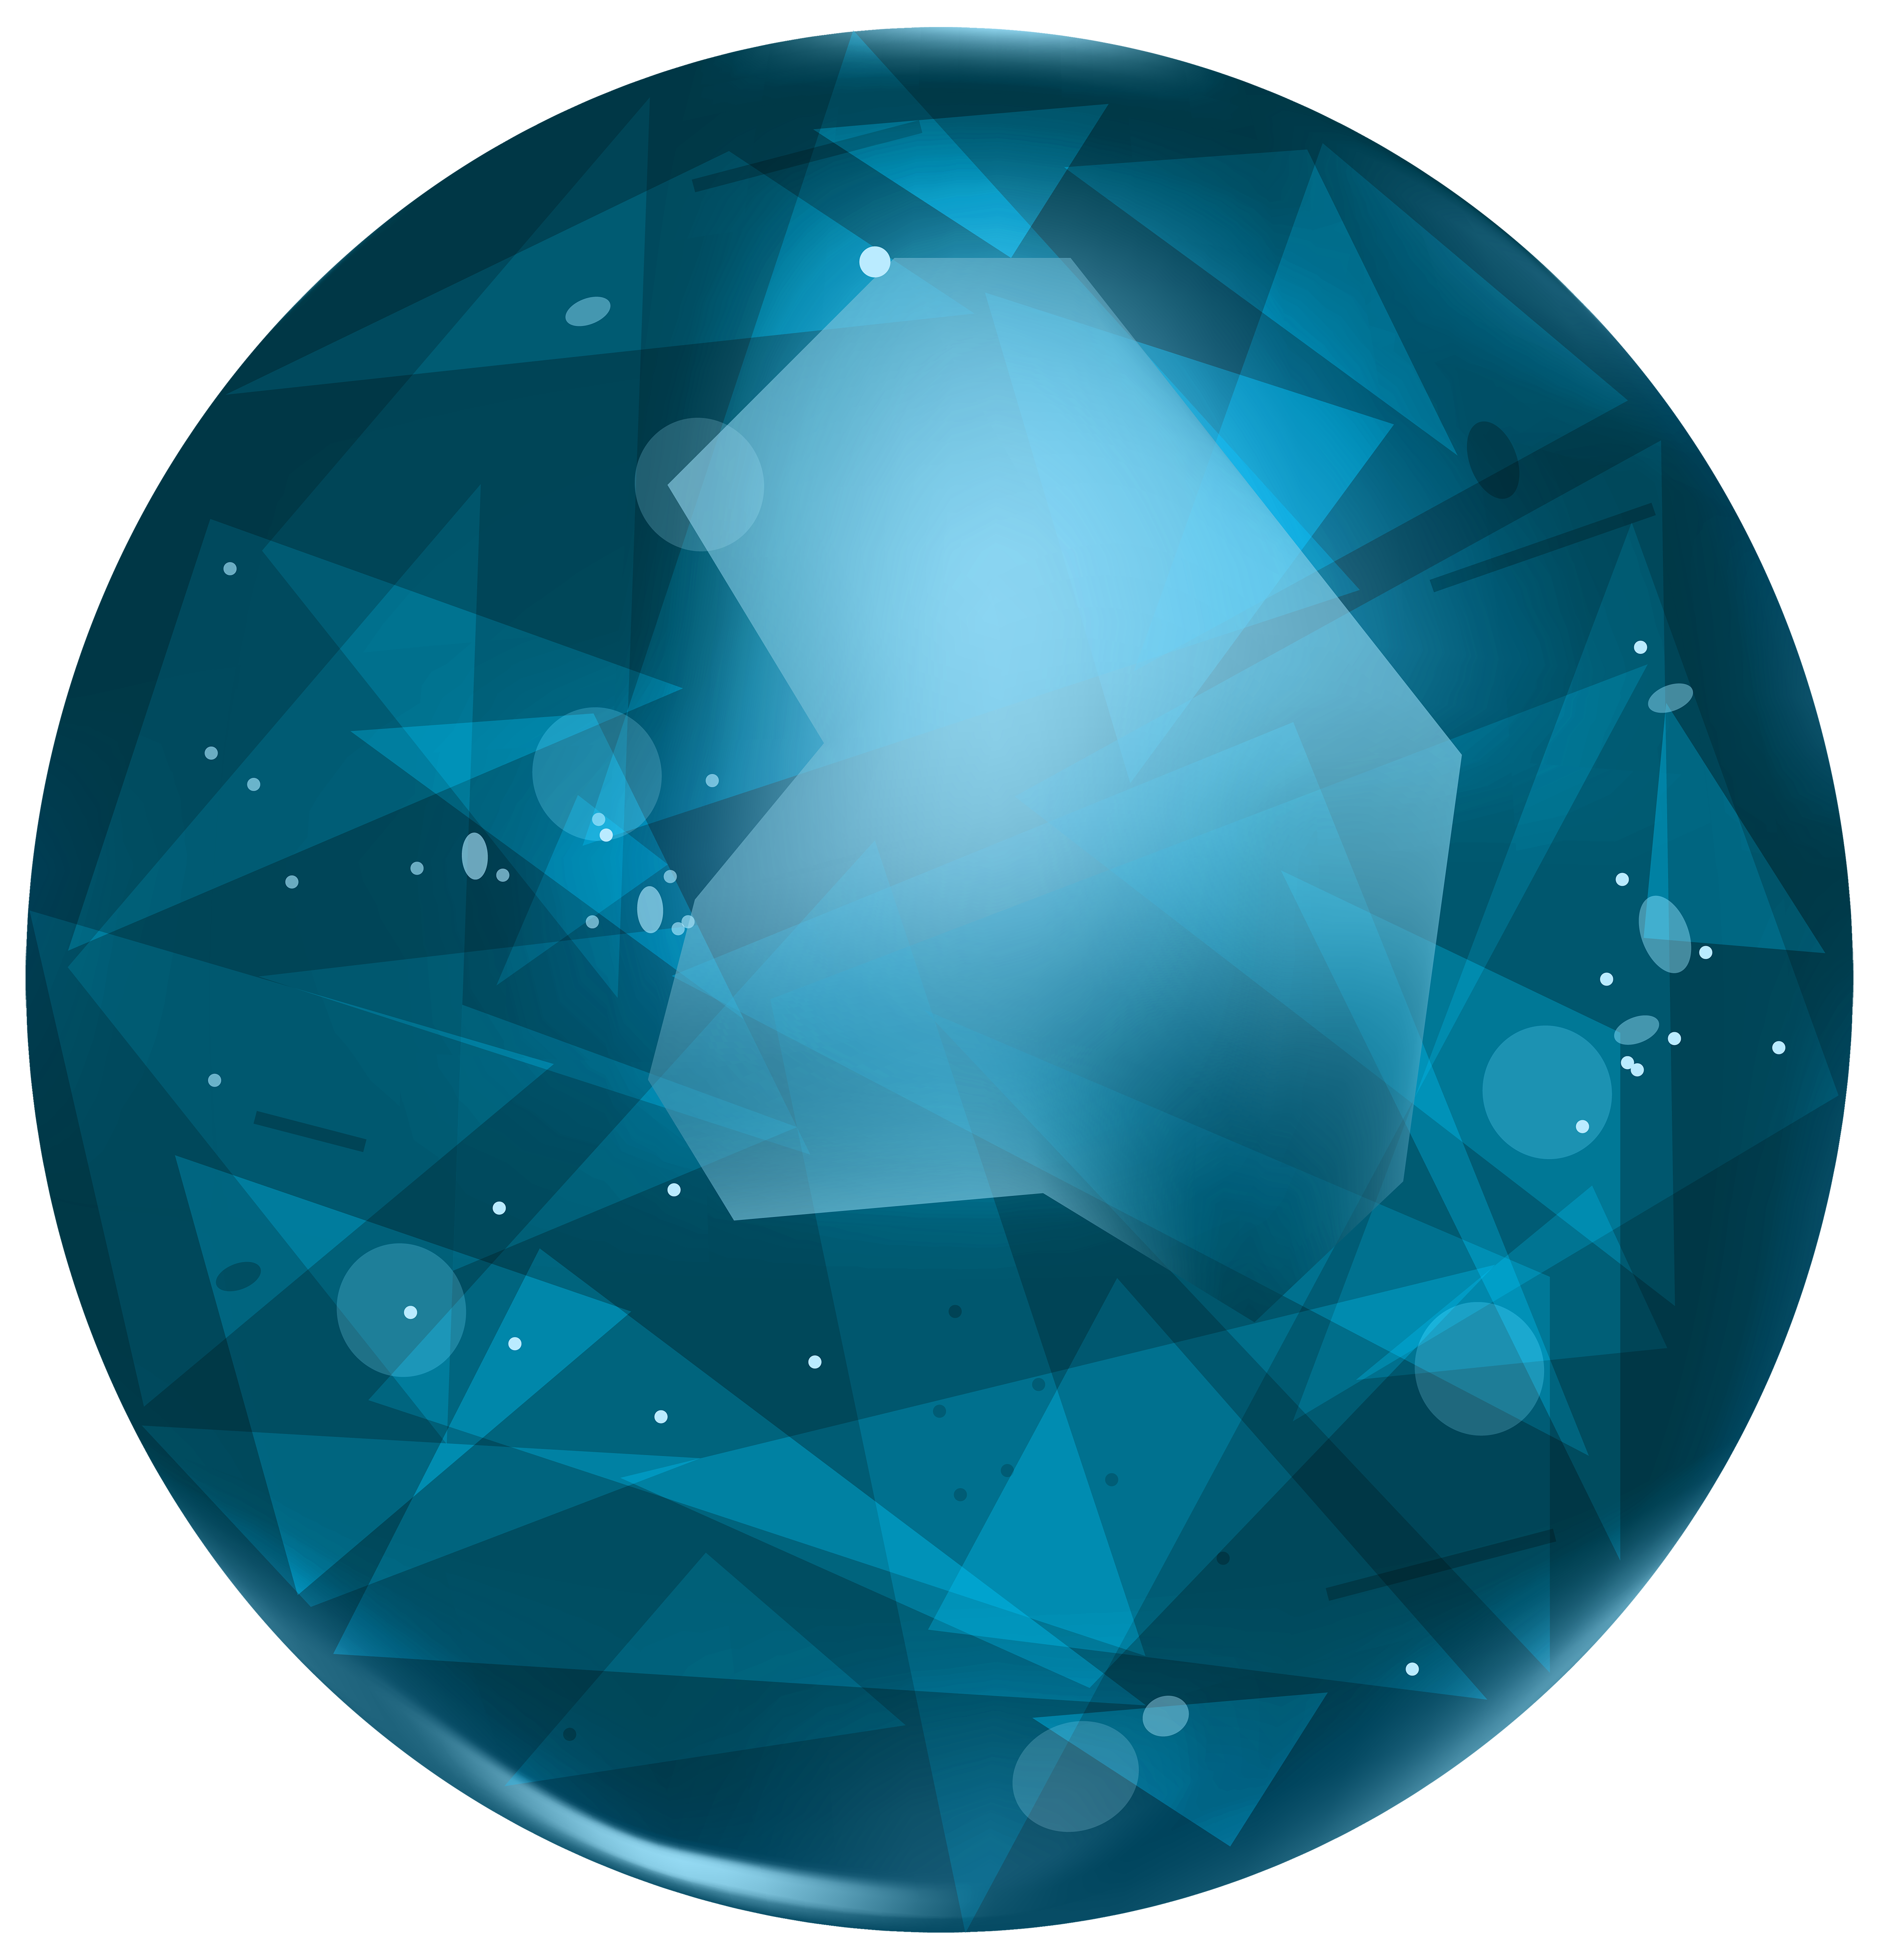 Clipart diamond saphire. Oval sapphire heart png